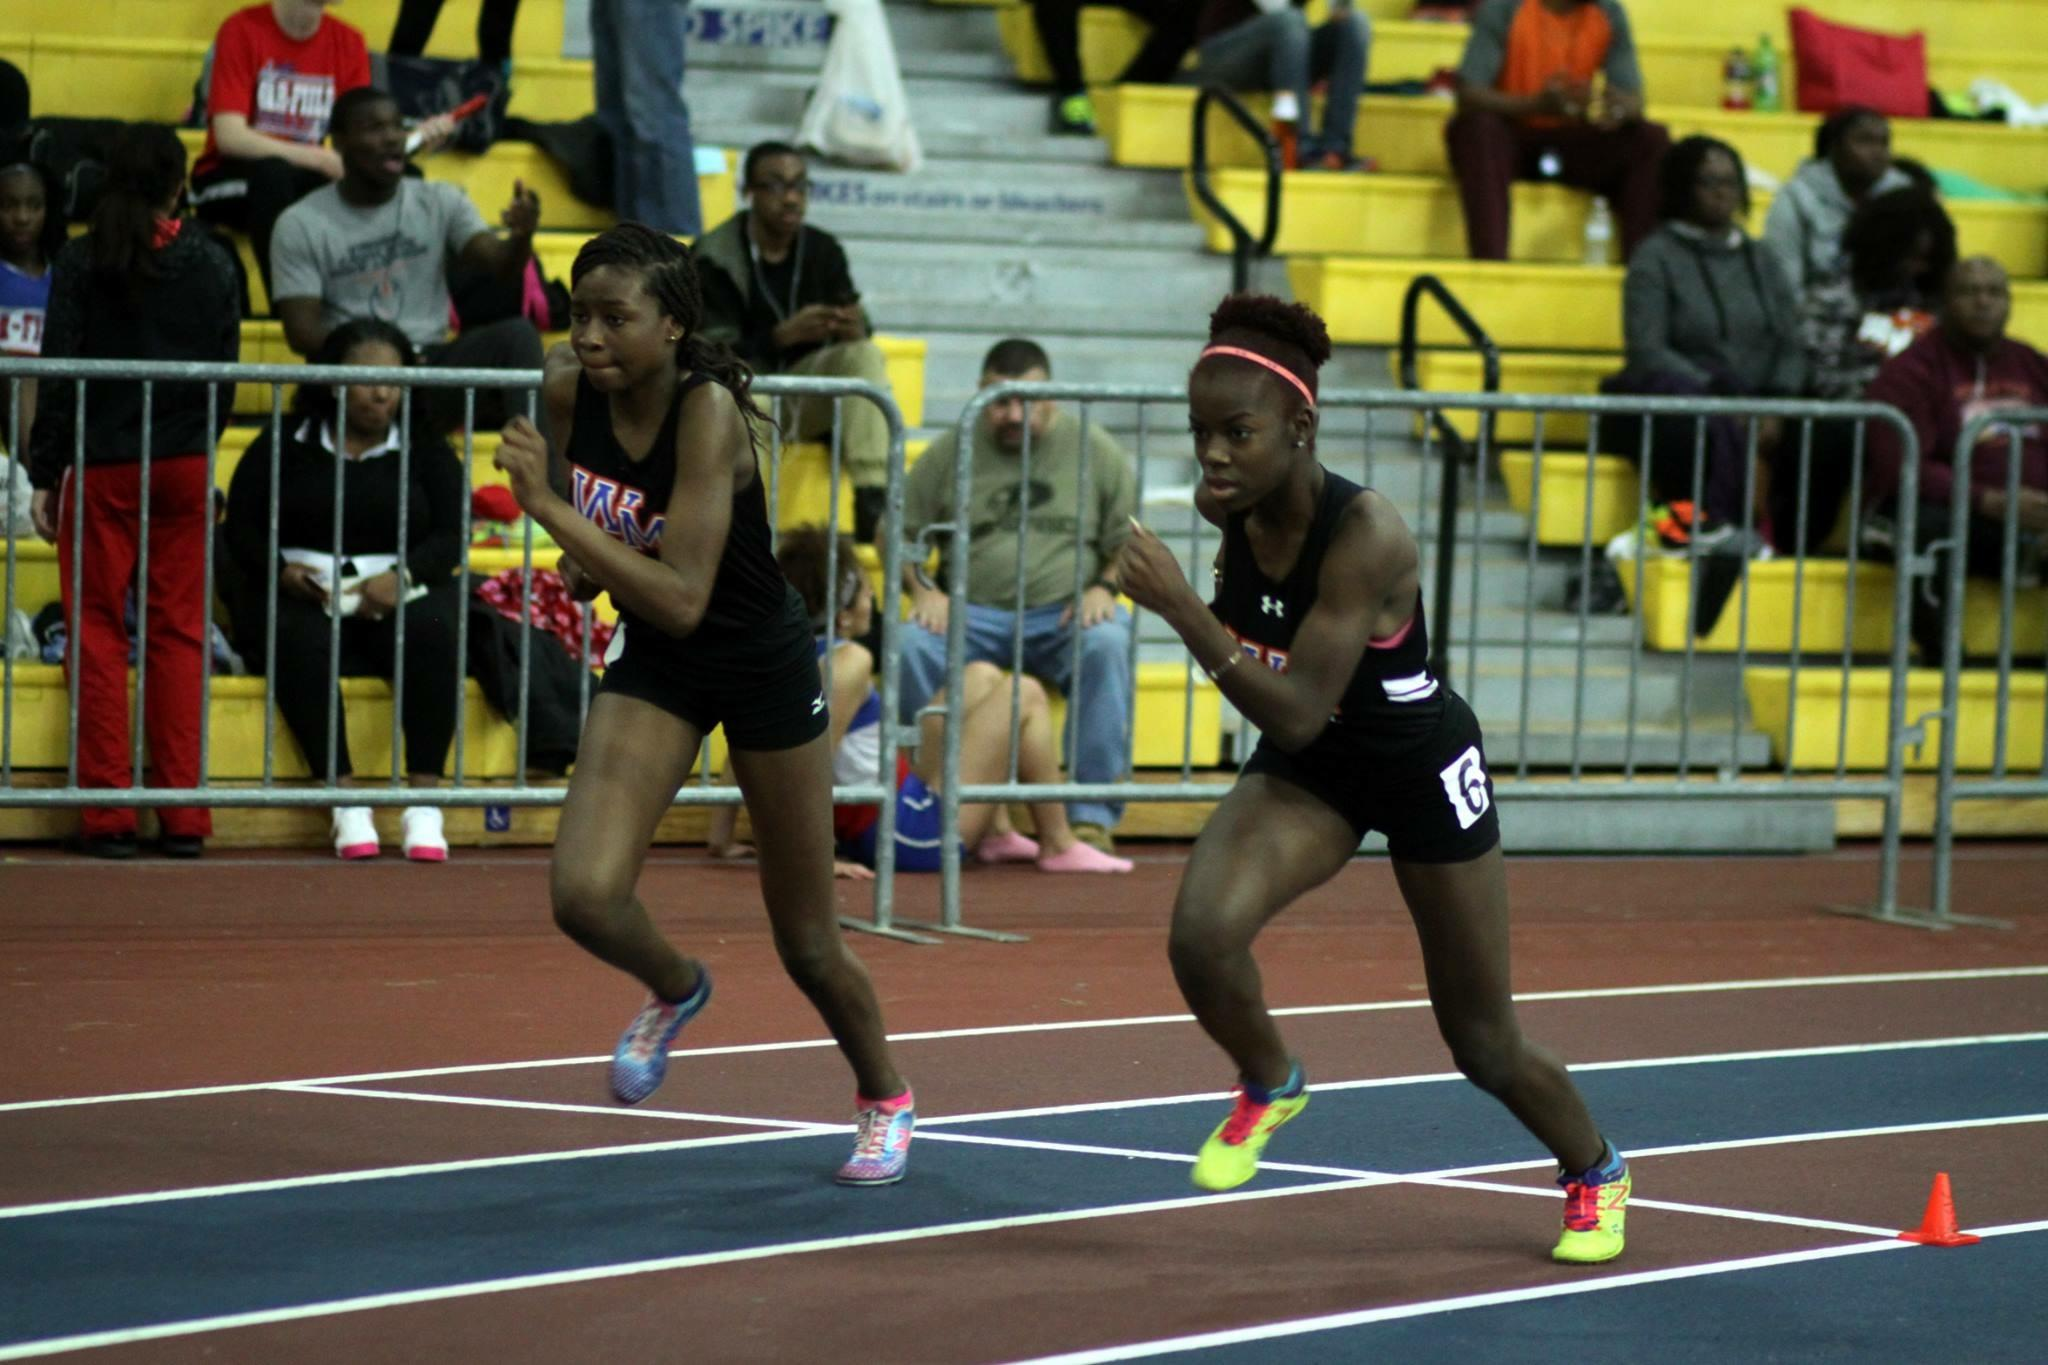 Watkins Mill girls senior Rhoda Miller and freshman Theresa Secke take off in girls 500m